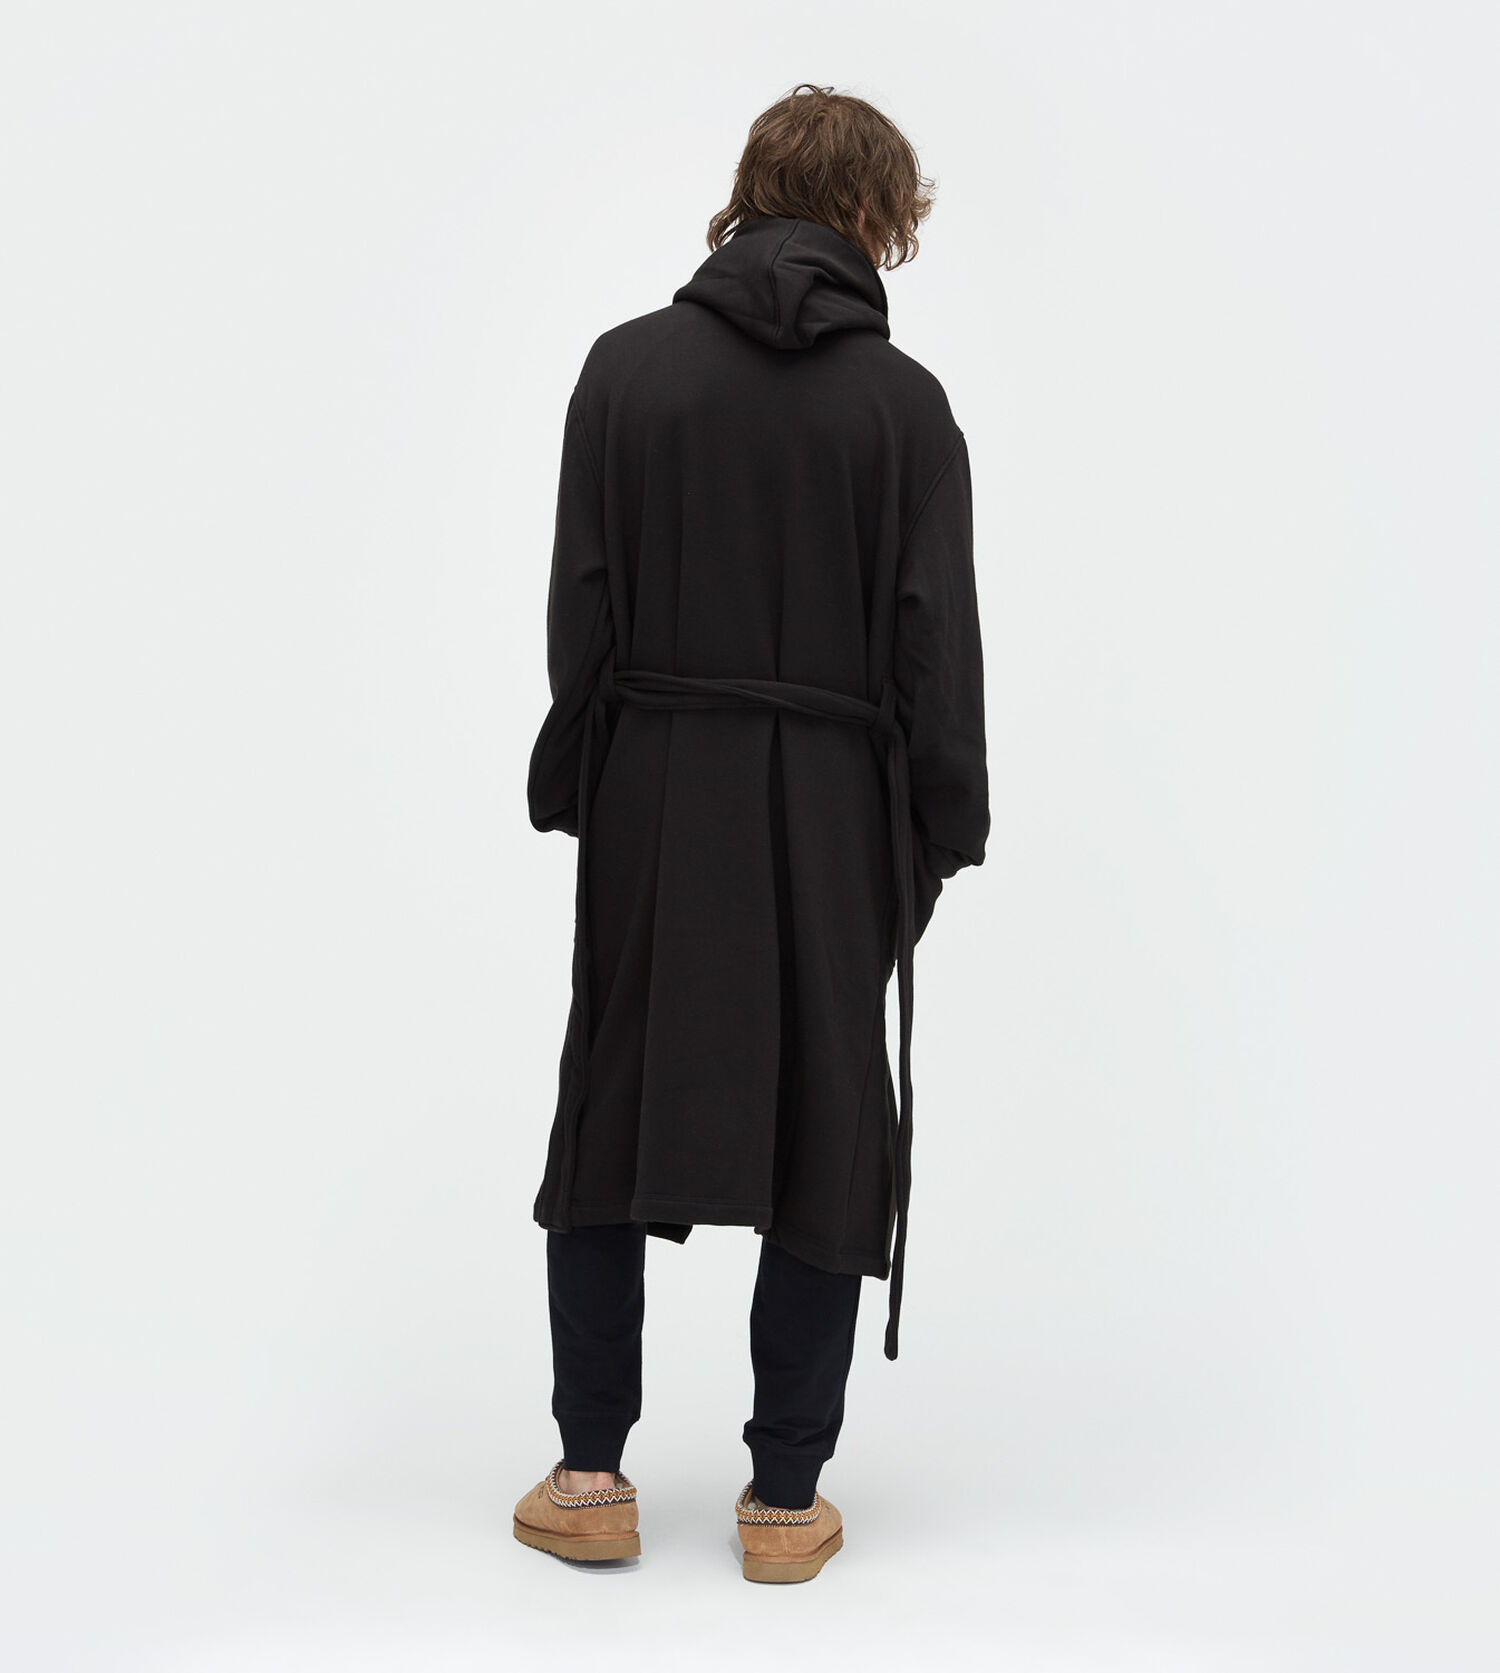 Zoom Brunswick Robe - Image 2 of 4 a13dae1b7